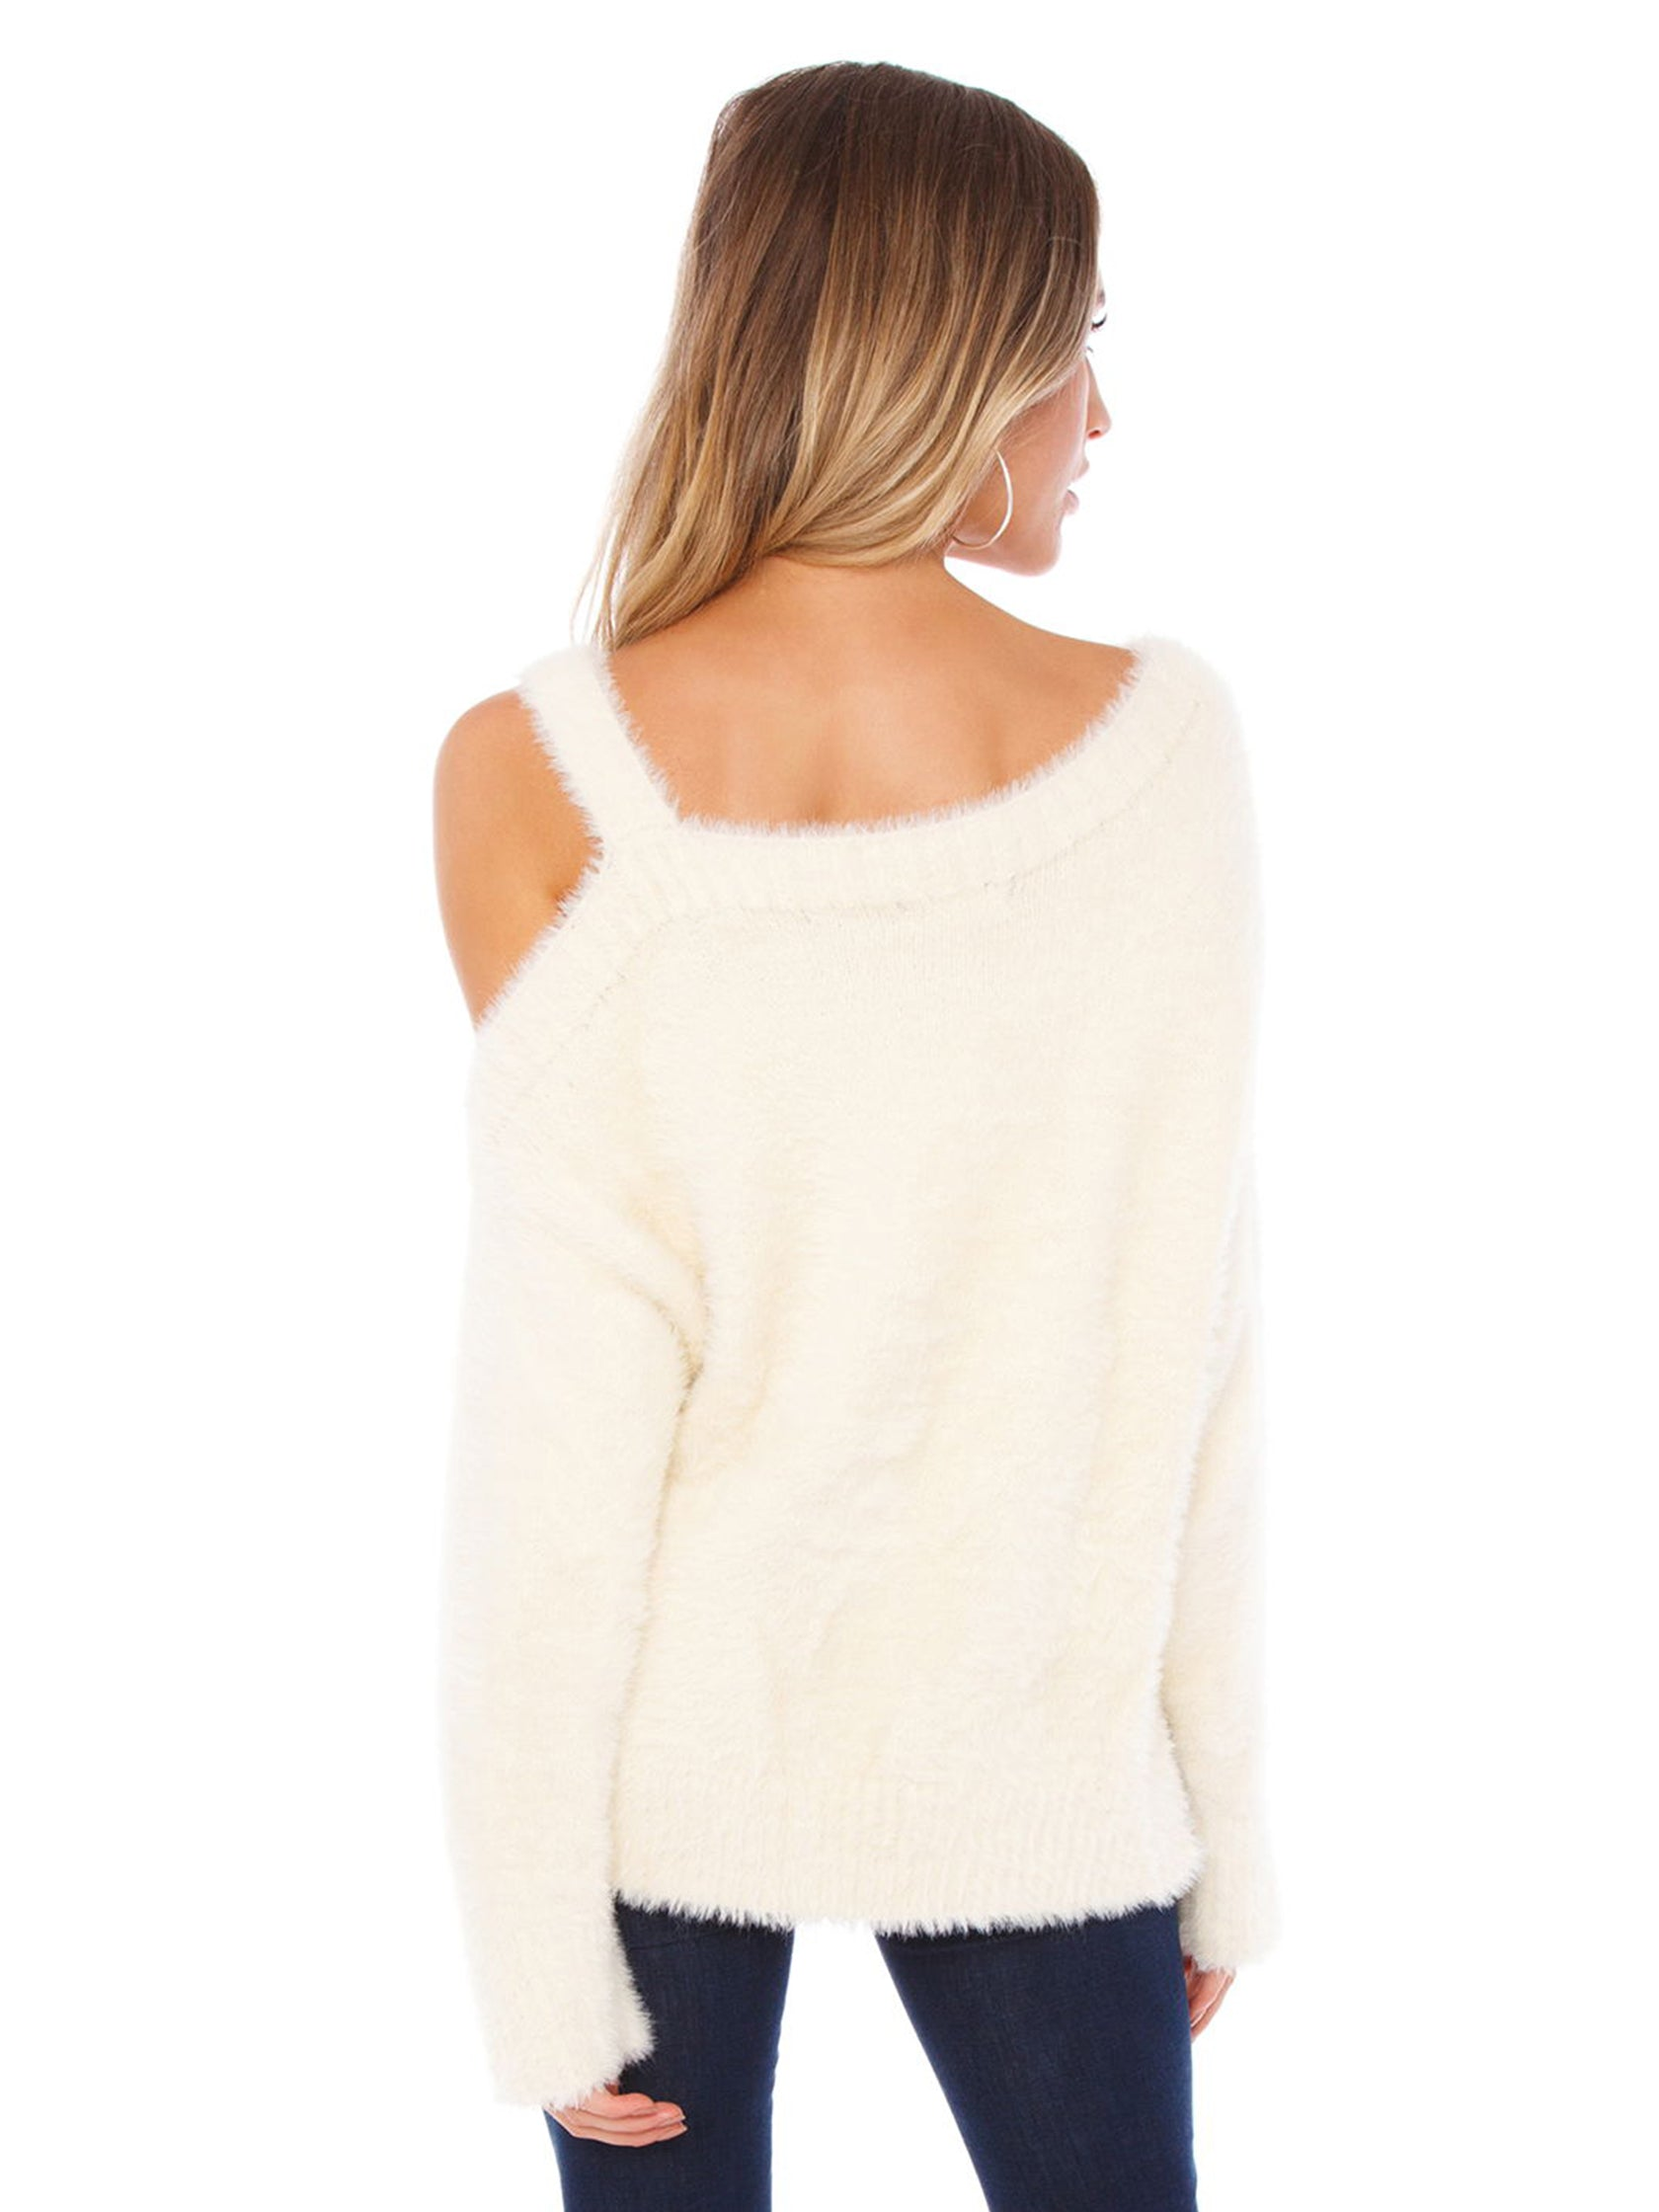 Women outfit in a sweater rental from FashionPass called Amy Cold Shoulder Sweater